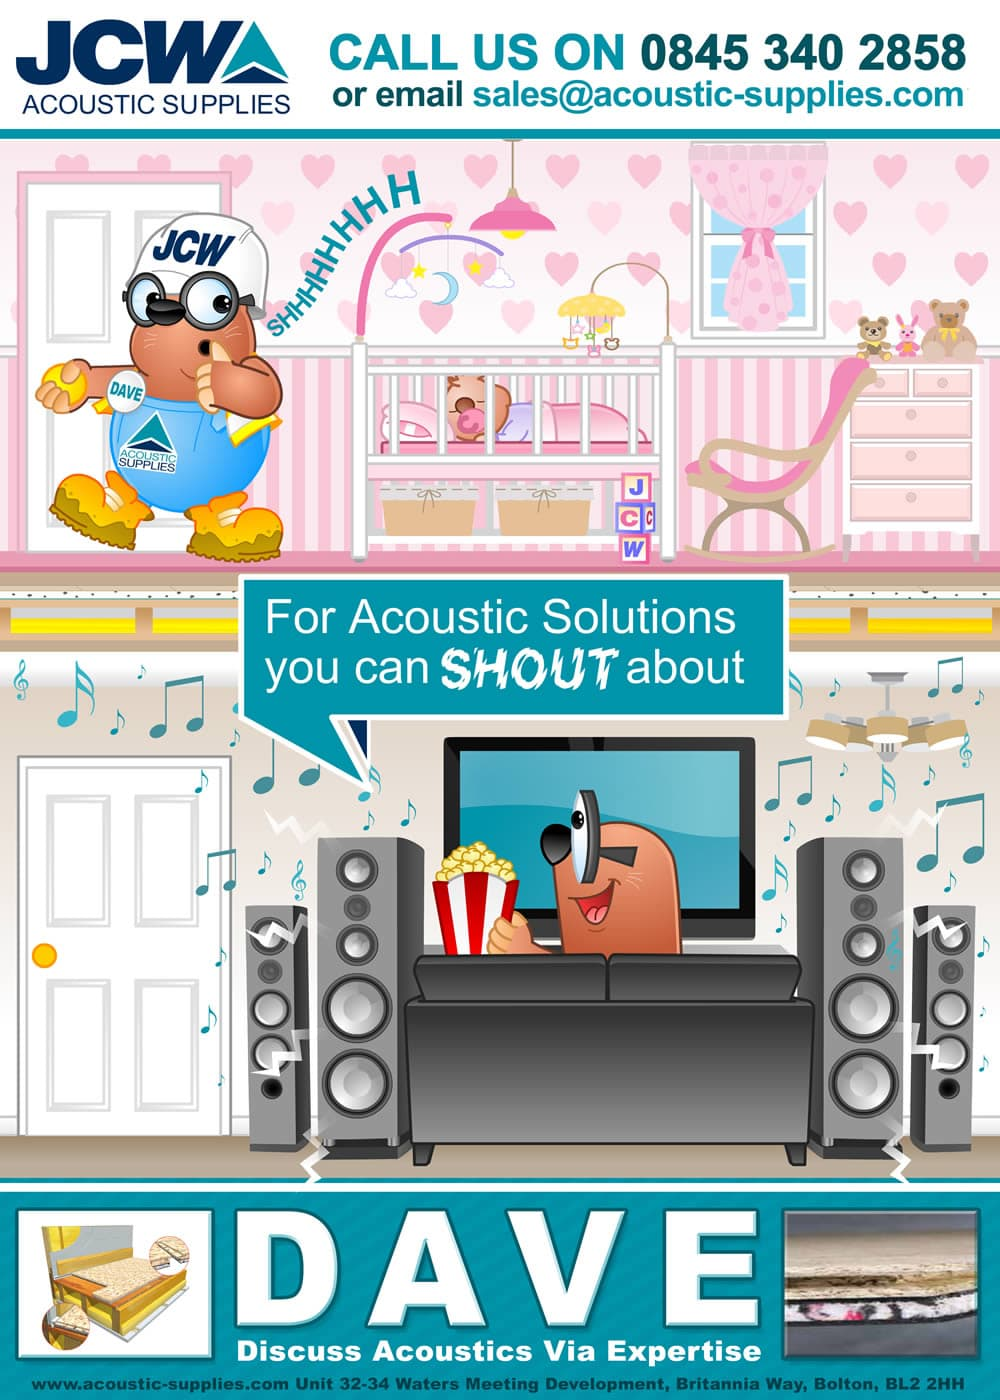 DAVE - JCW Acoustic Supplies Poster